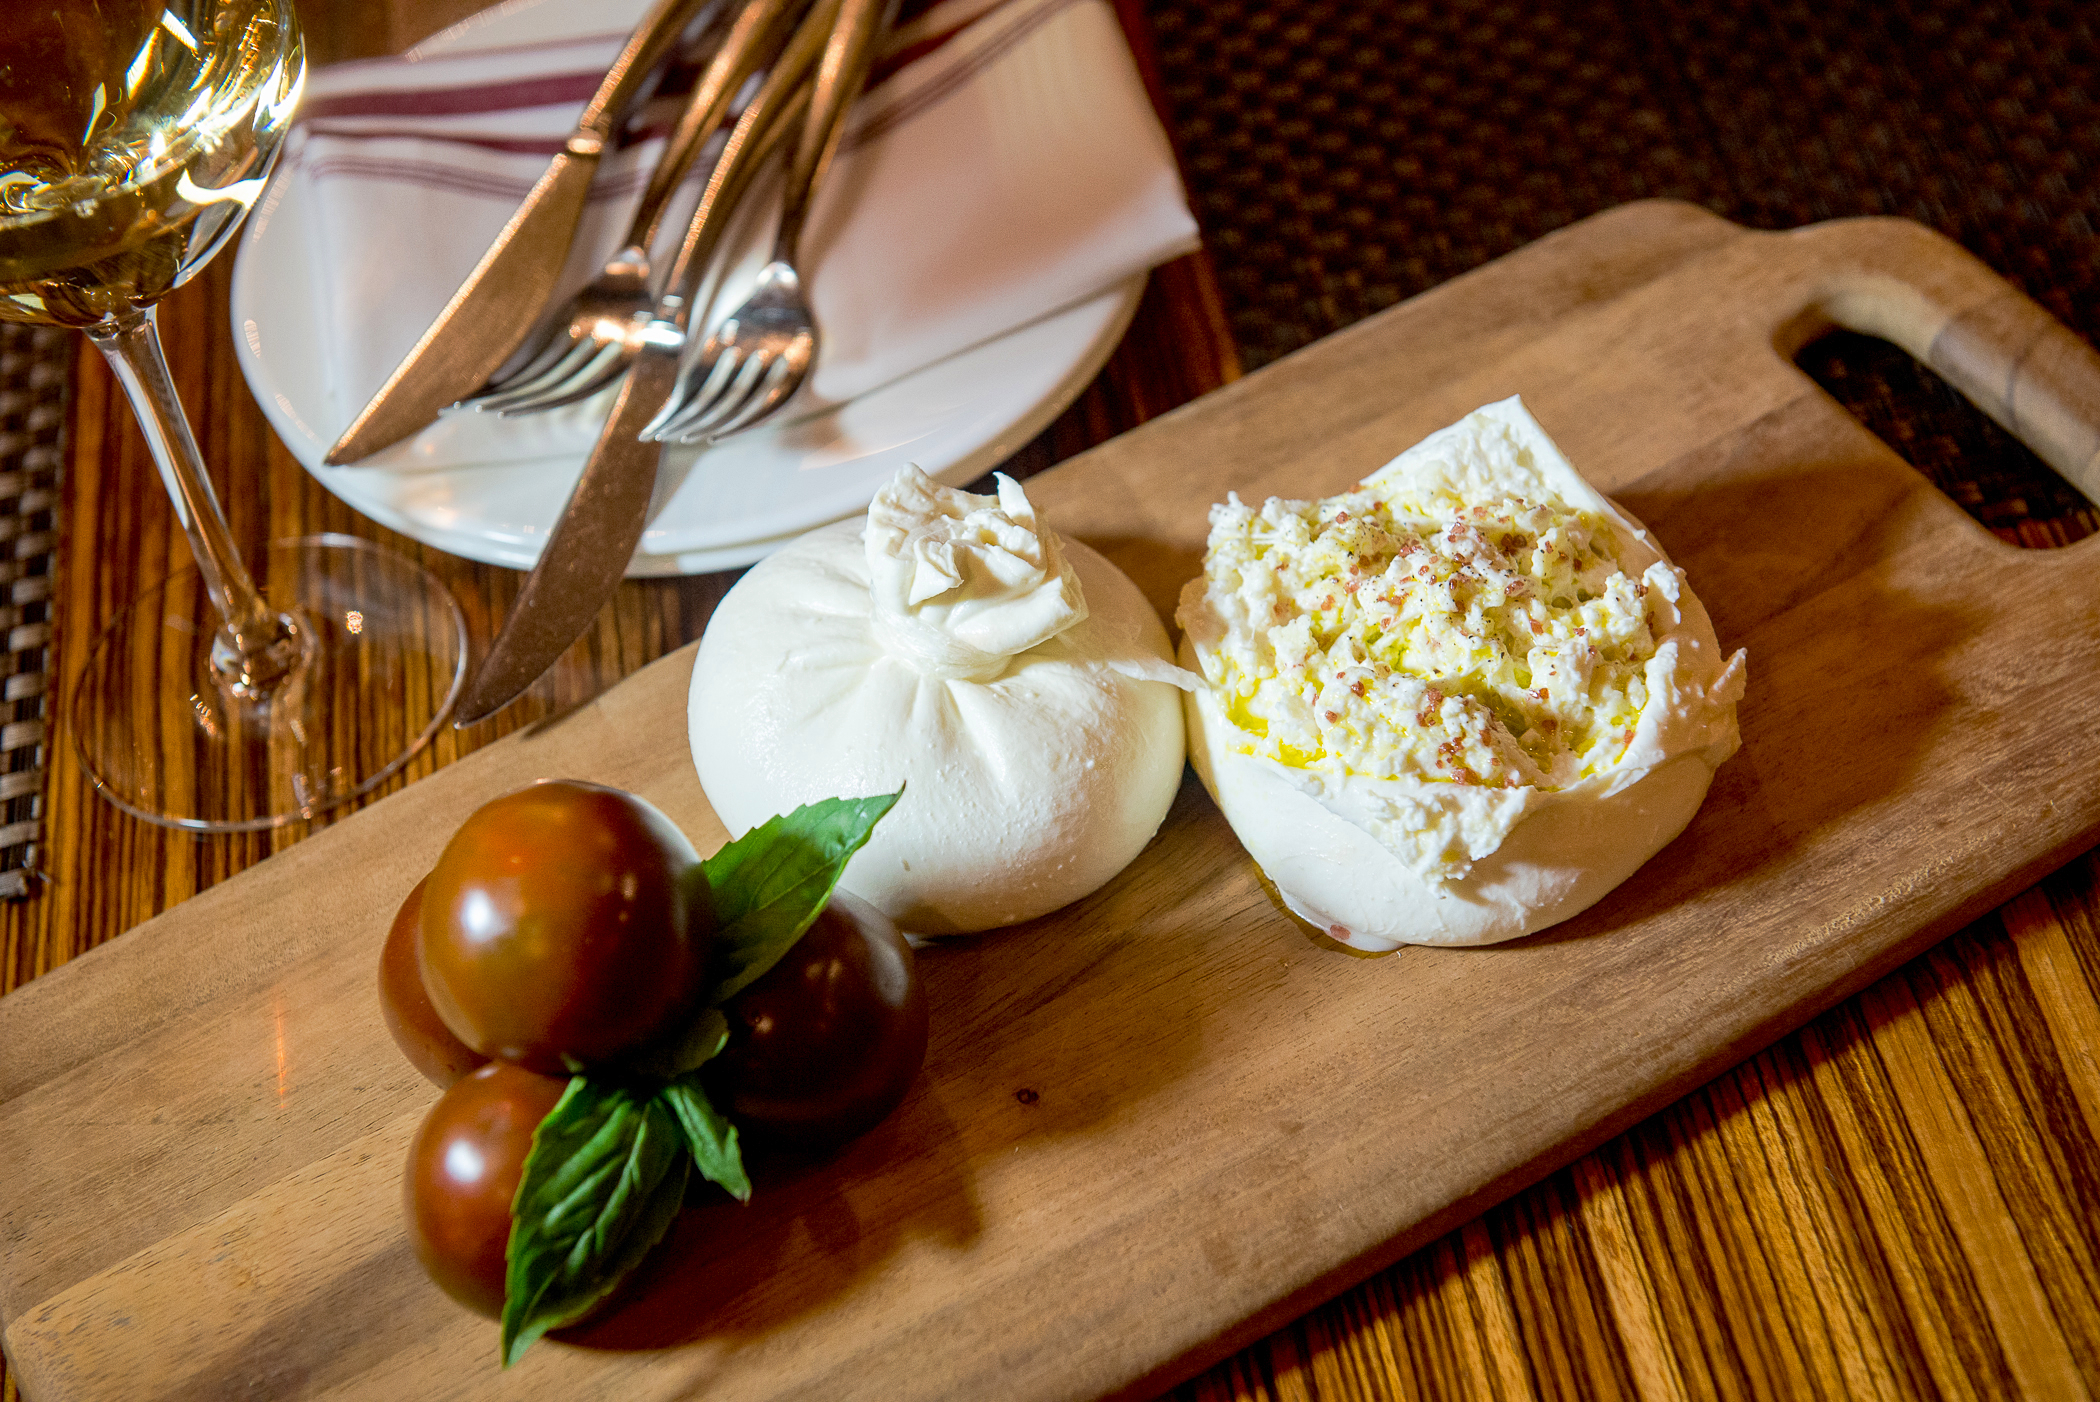 Discussion on this topic: Simple Ways to Eat Burrata: 10 Steps, simple-ways-to-eat-burrata-10-steps/